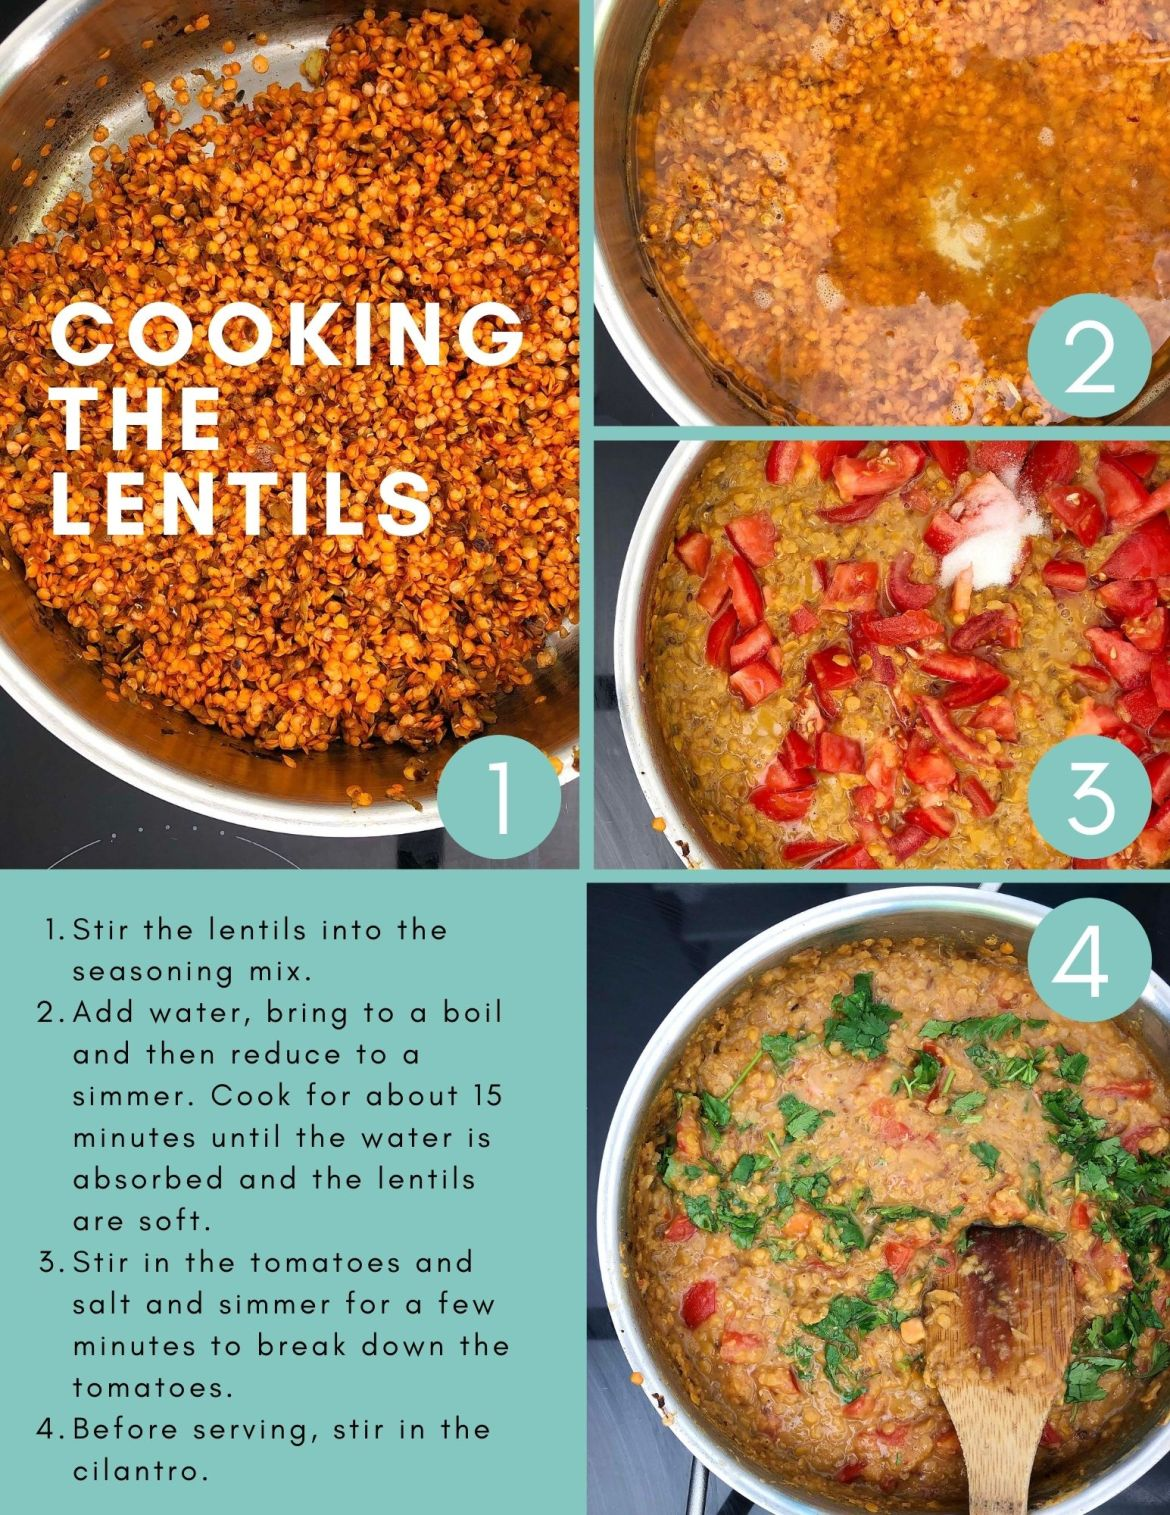 Infographic titled: Cooking the Lentils. Image #1 shows the lentils in a frying pan, added to the seasoning mix. Text reads: Stir the lentils into the seasoning mix. Image #2 shows water added to the lentils in the frying pan. Text reads: Add water, bring to a boil and then reduce to a simmer. Cook for about 15 minutes or until all the water is absorbed and the lentils are soft. Image #3 shows the tomatoes and salt added to the cooked lentils. Text reads: Stir in the tomatoes and salt and simmer for a few minutes to break down the tomatoes. Image #4 shows cilantro stirred into the lentils with a wooden spoon. Text reads: Before serving, stir in the cilantro.